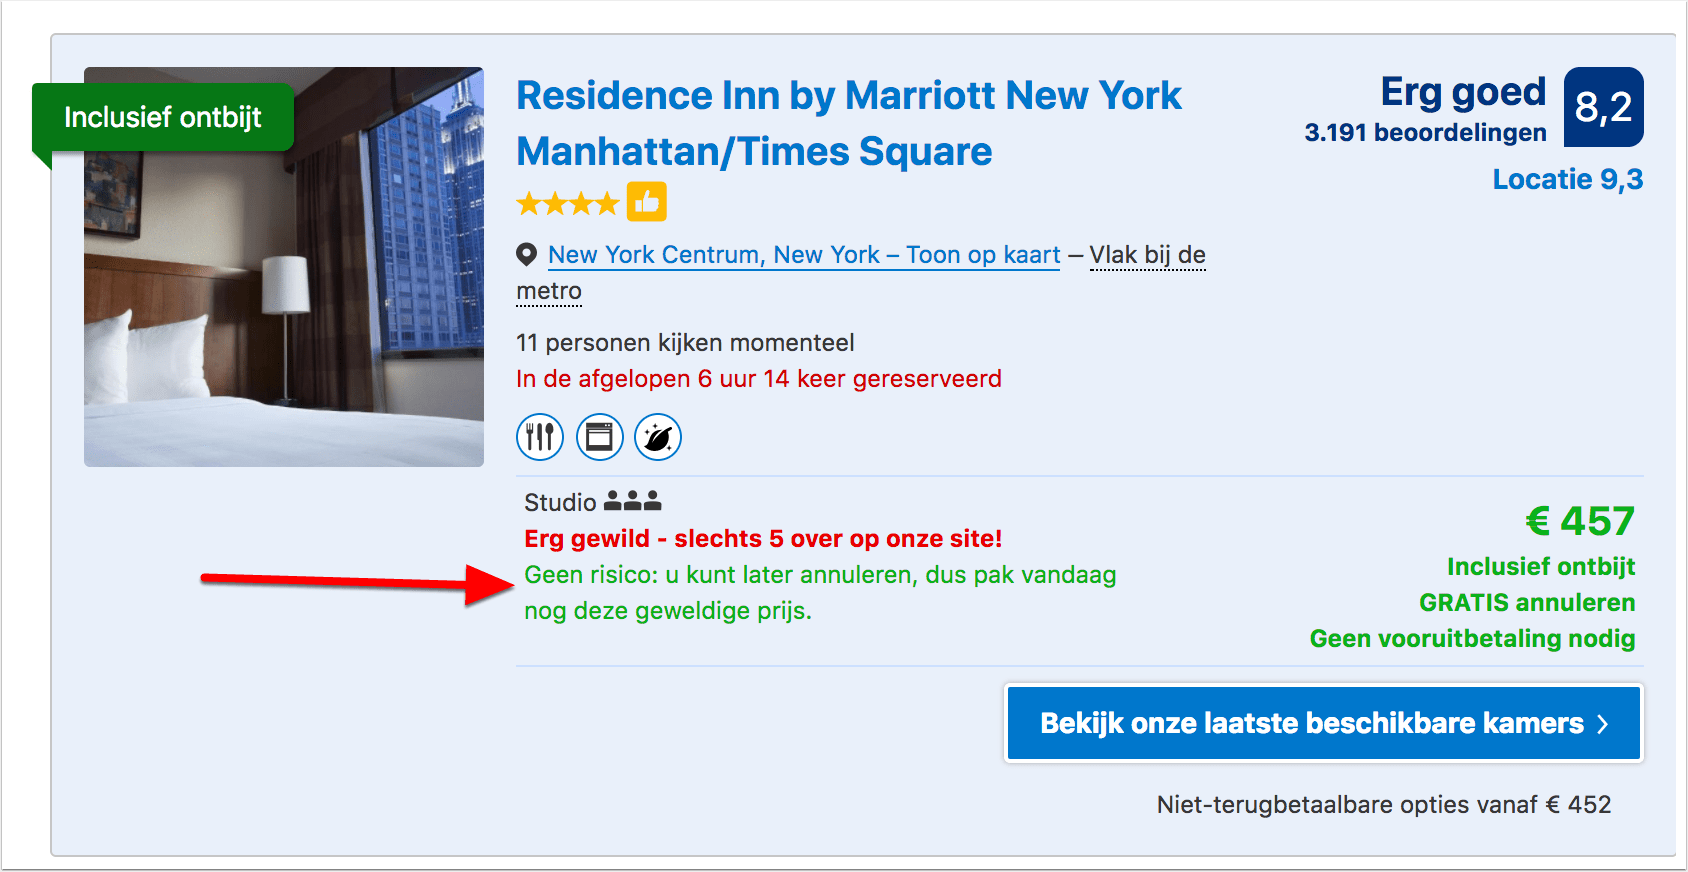 bookingcom--371-hotels-in-new-york-new-york-centrum-reserveer-nu-uw-hotel-1.png